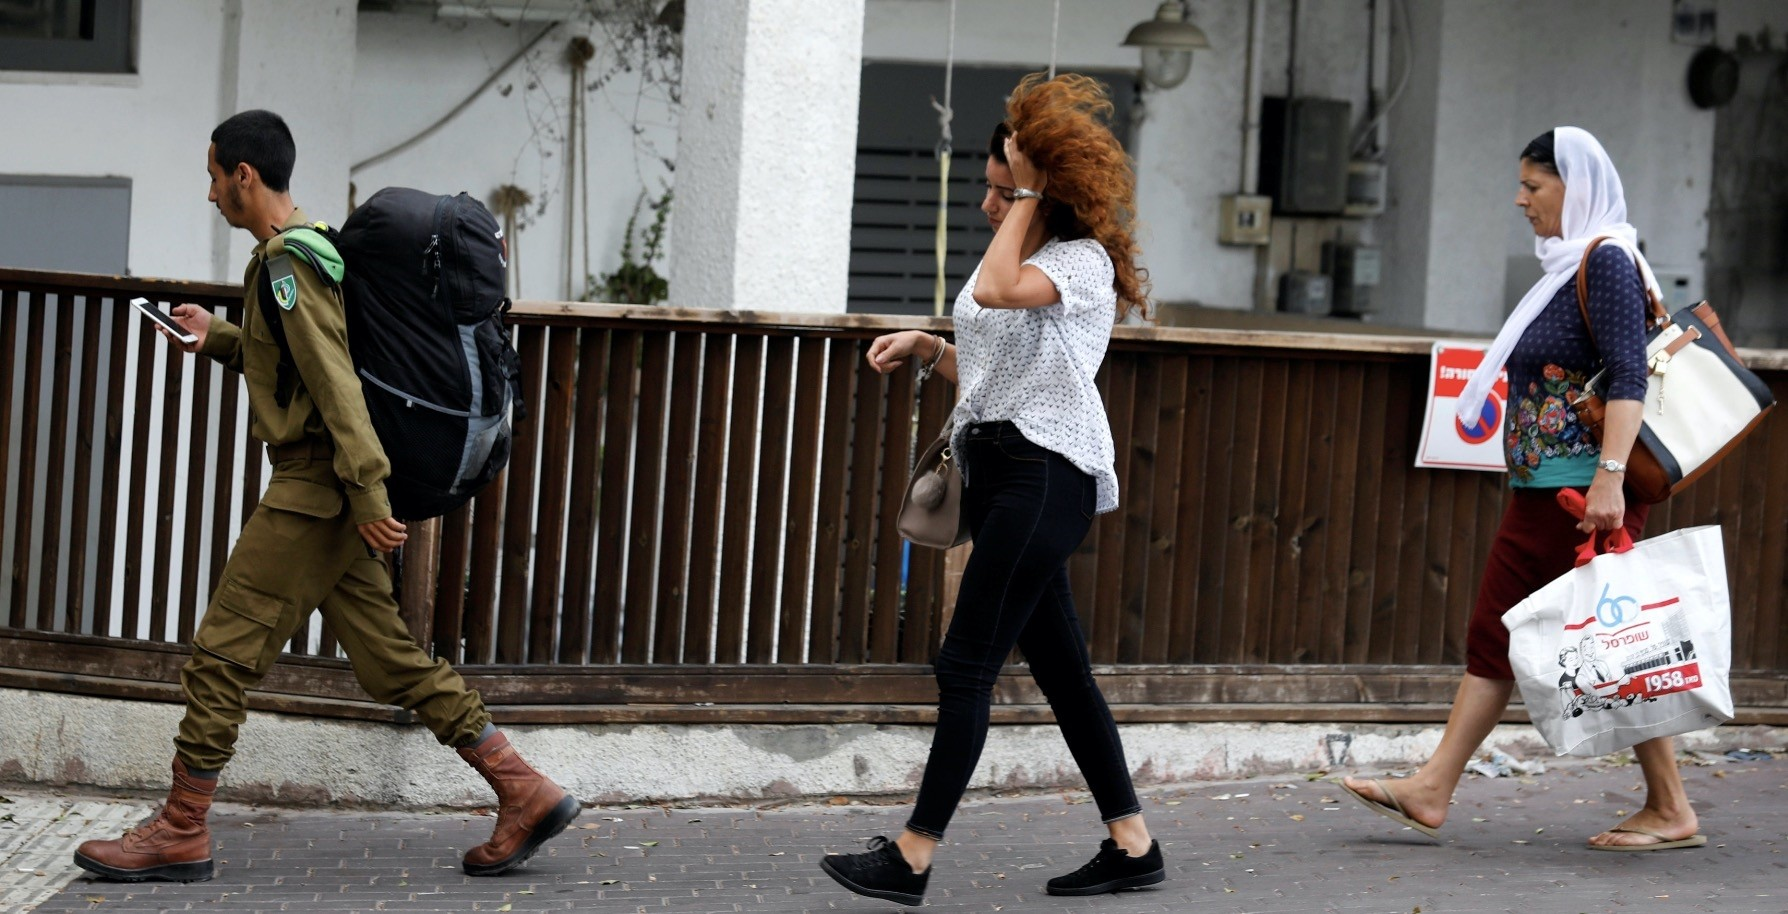 An Israeli soldier from the Druze minority walks past others in the Druze town of Daliat al-Karmel, northern Israel, Aug. 2.